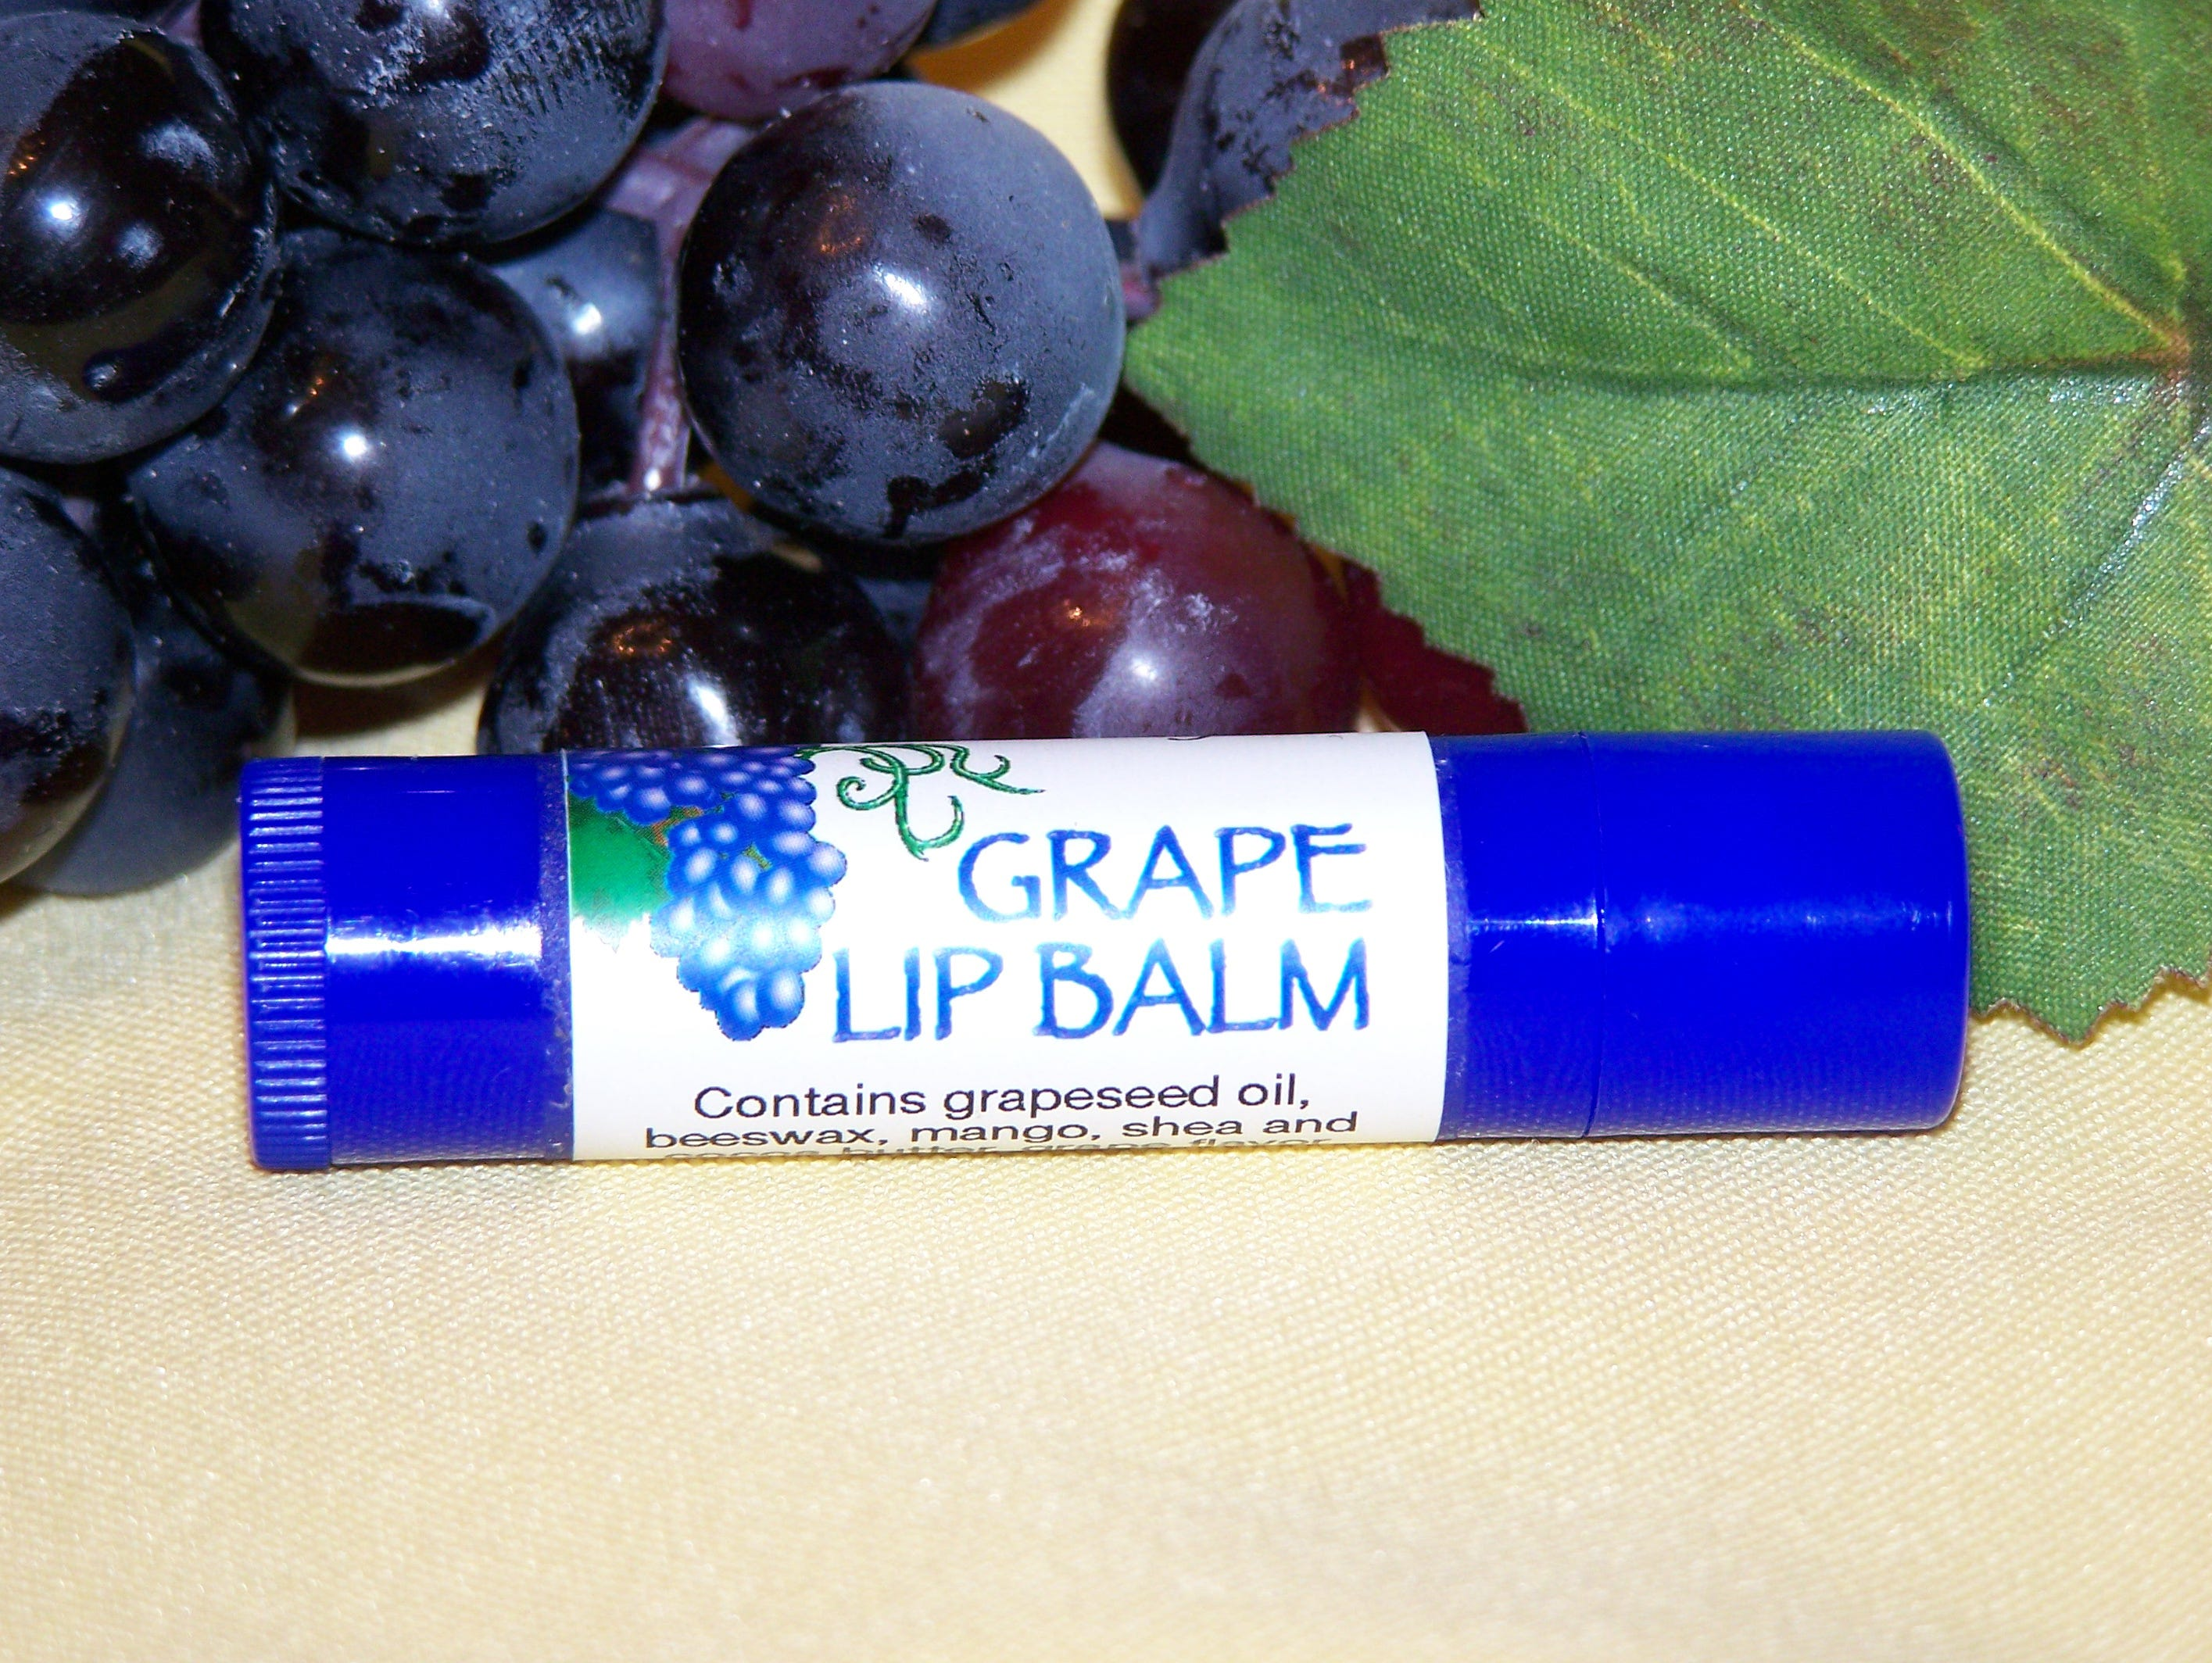 Get a free Heal My Sole Lip Balm with any $10 or more purchase of Heal My Sole products.